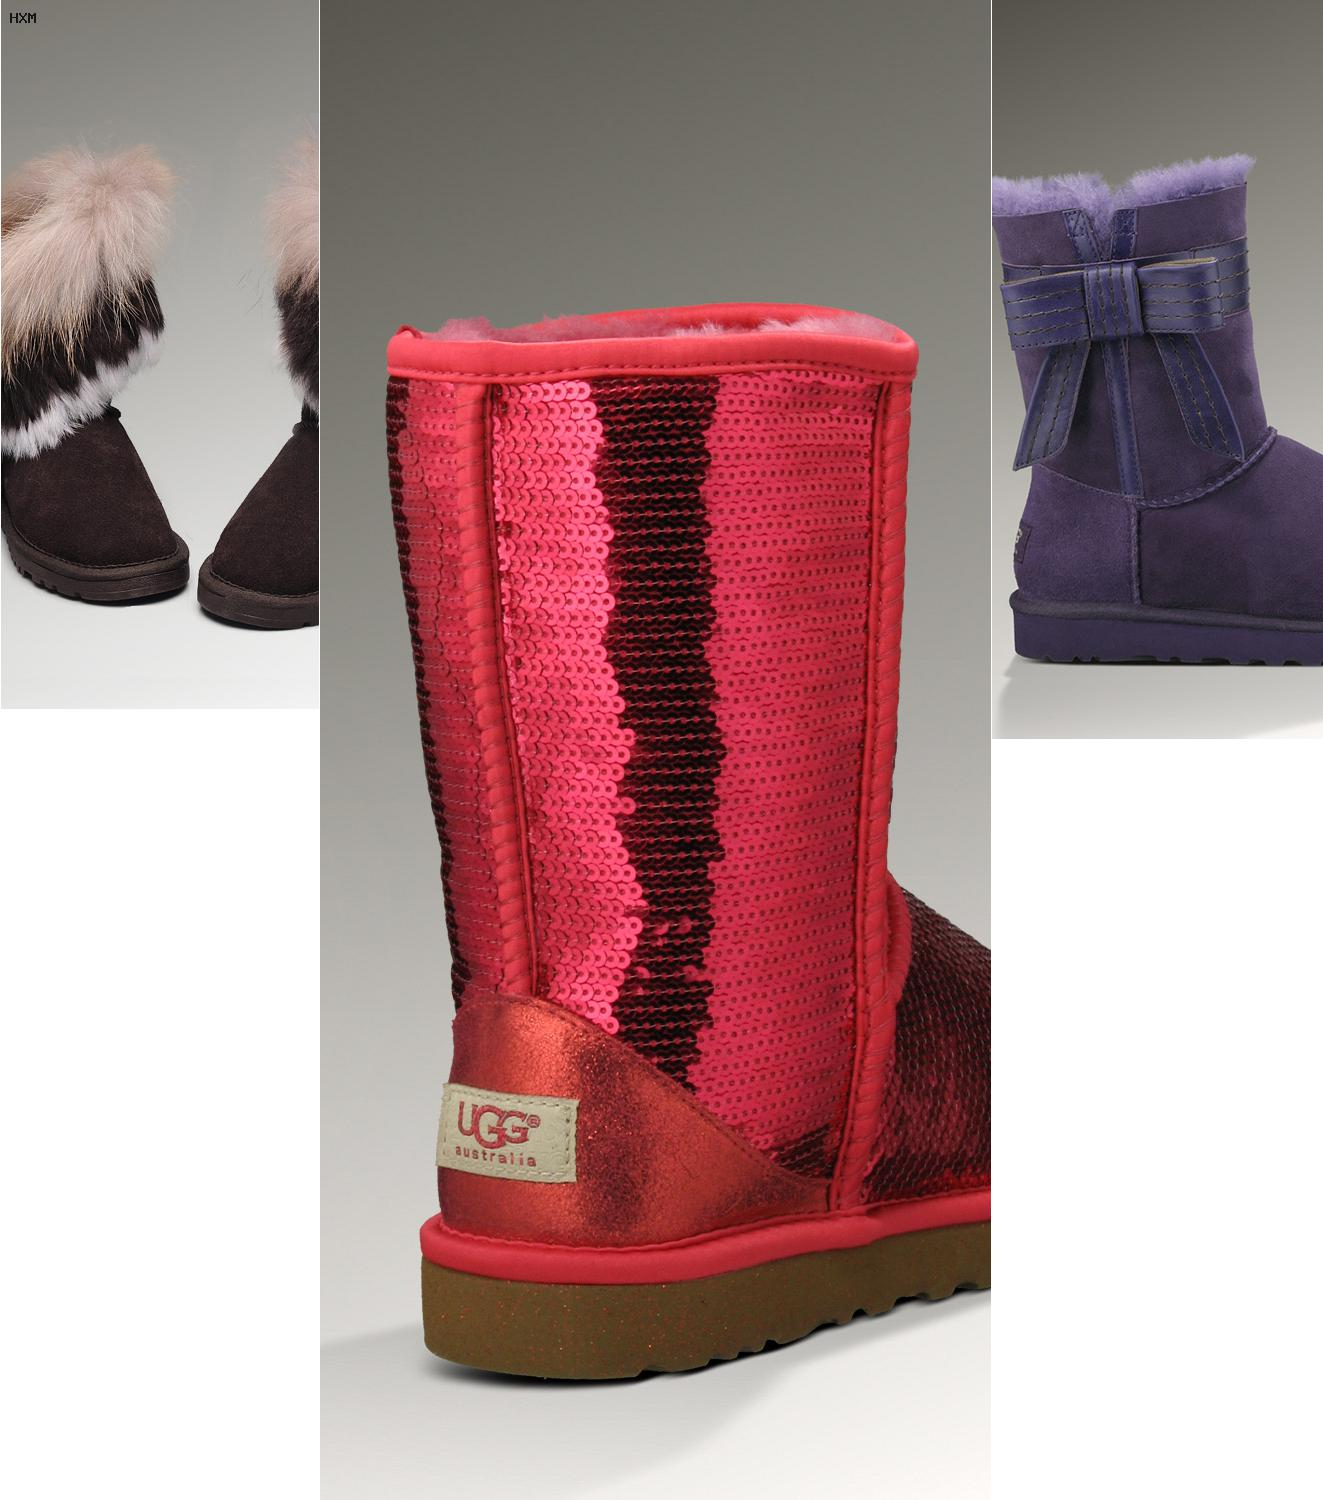 ugg boots passform